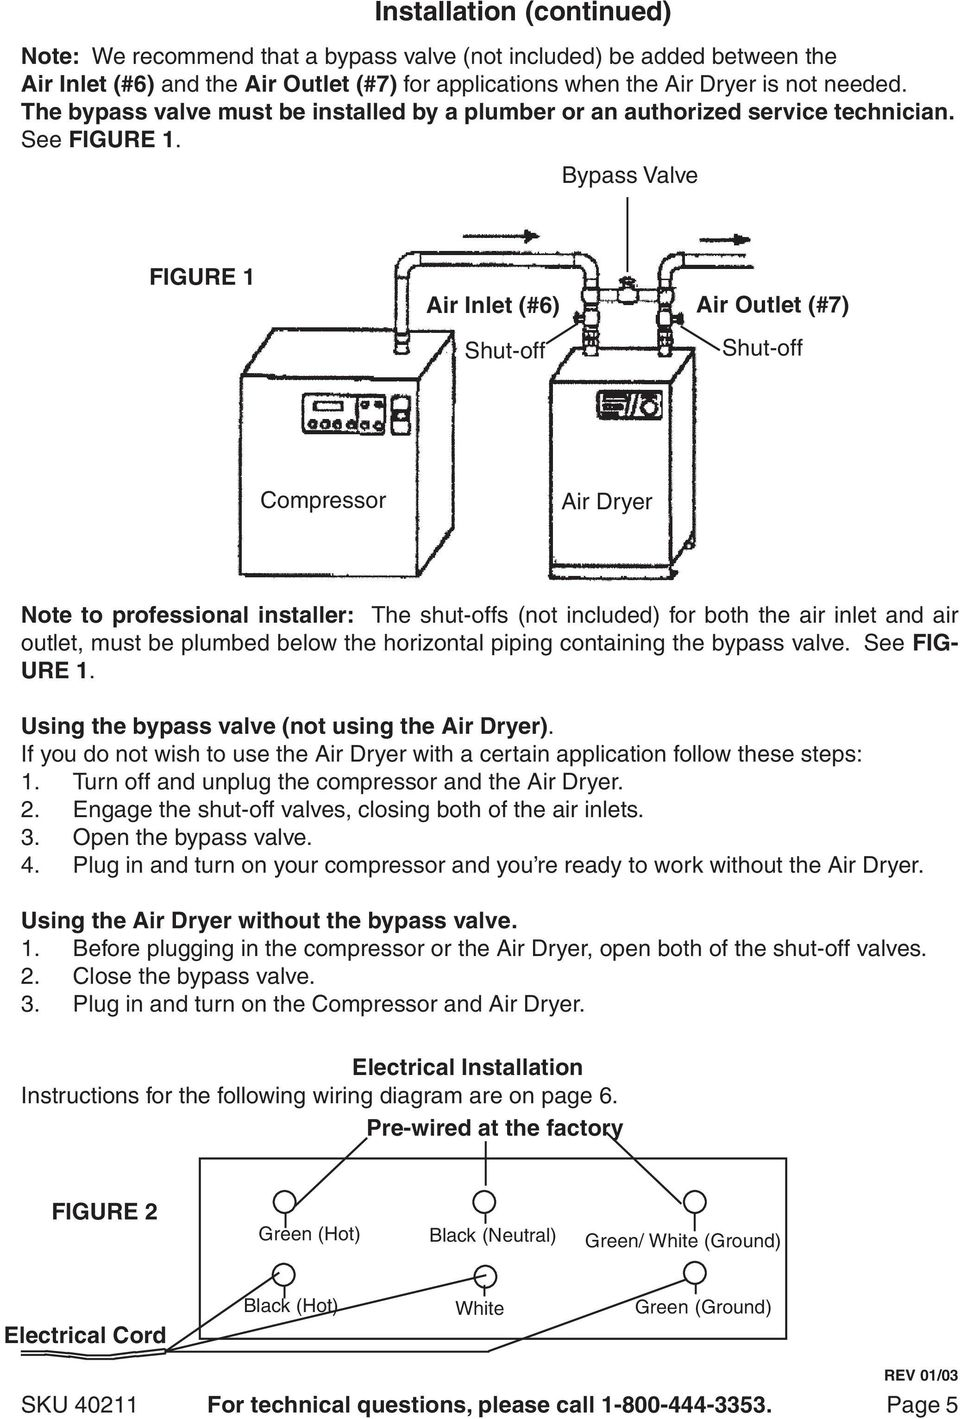 Bypass Valve FIGURE 1 Air Inlet (#6) Shut-off Air Outlet (#7) Shut-off Compressor Air Dryer Note to professional installer: The shut-offs (not included) for both the air inlet and air outlet, must be